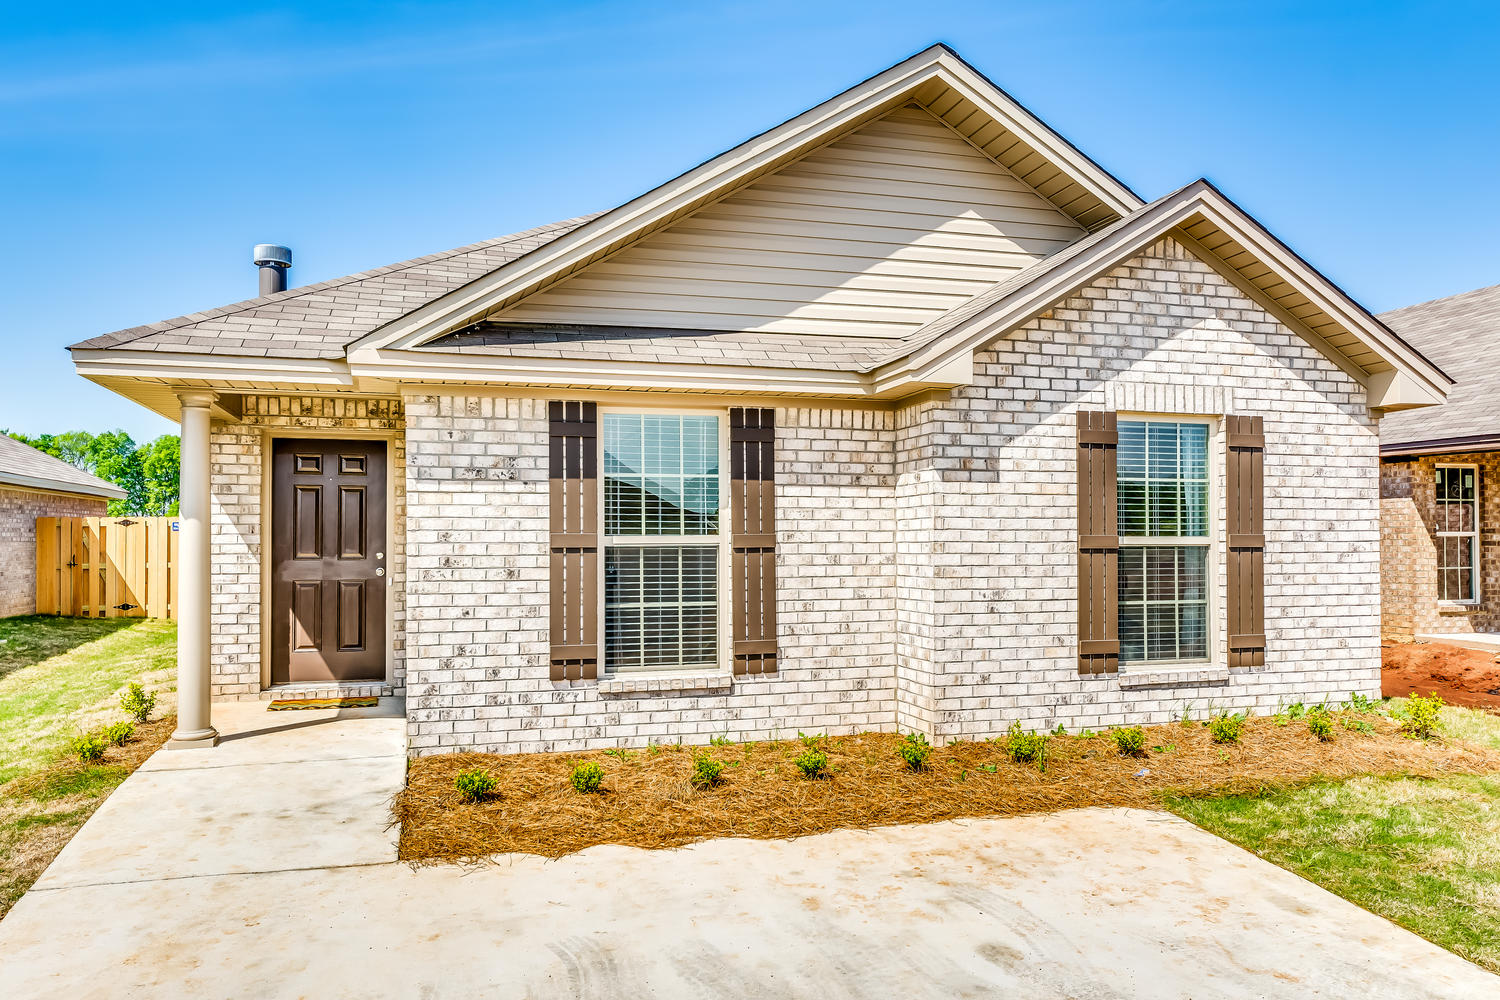 New Home Photo Gallery For First Time Home Buyers Goodwyn